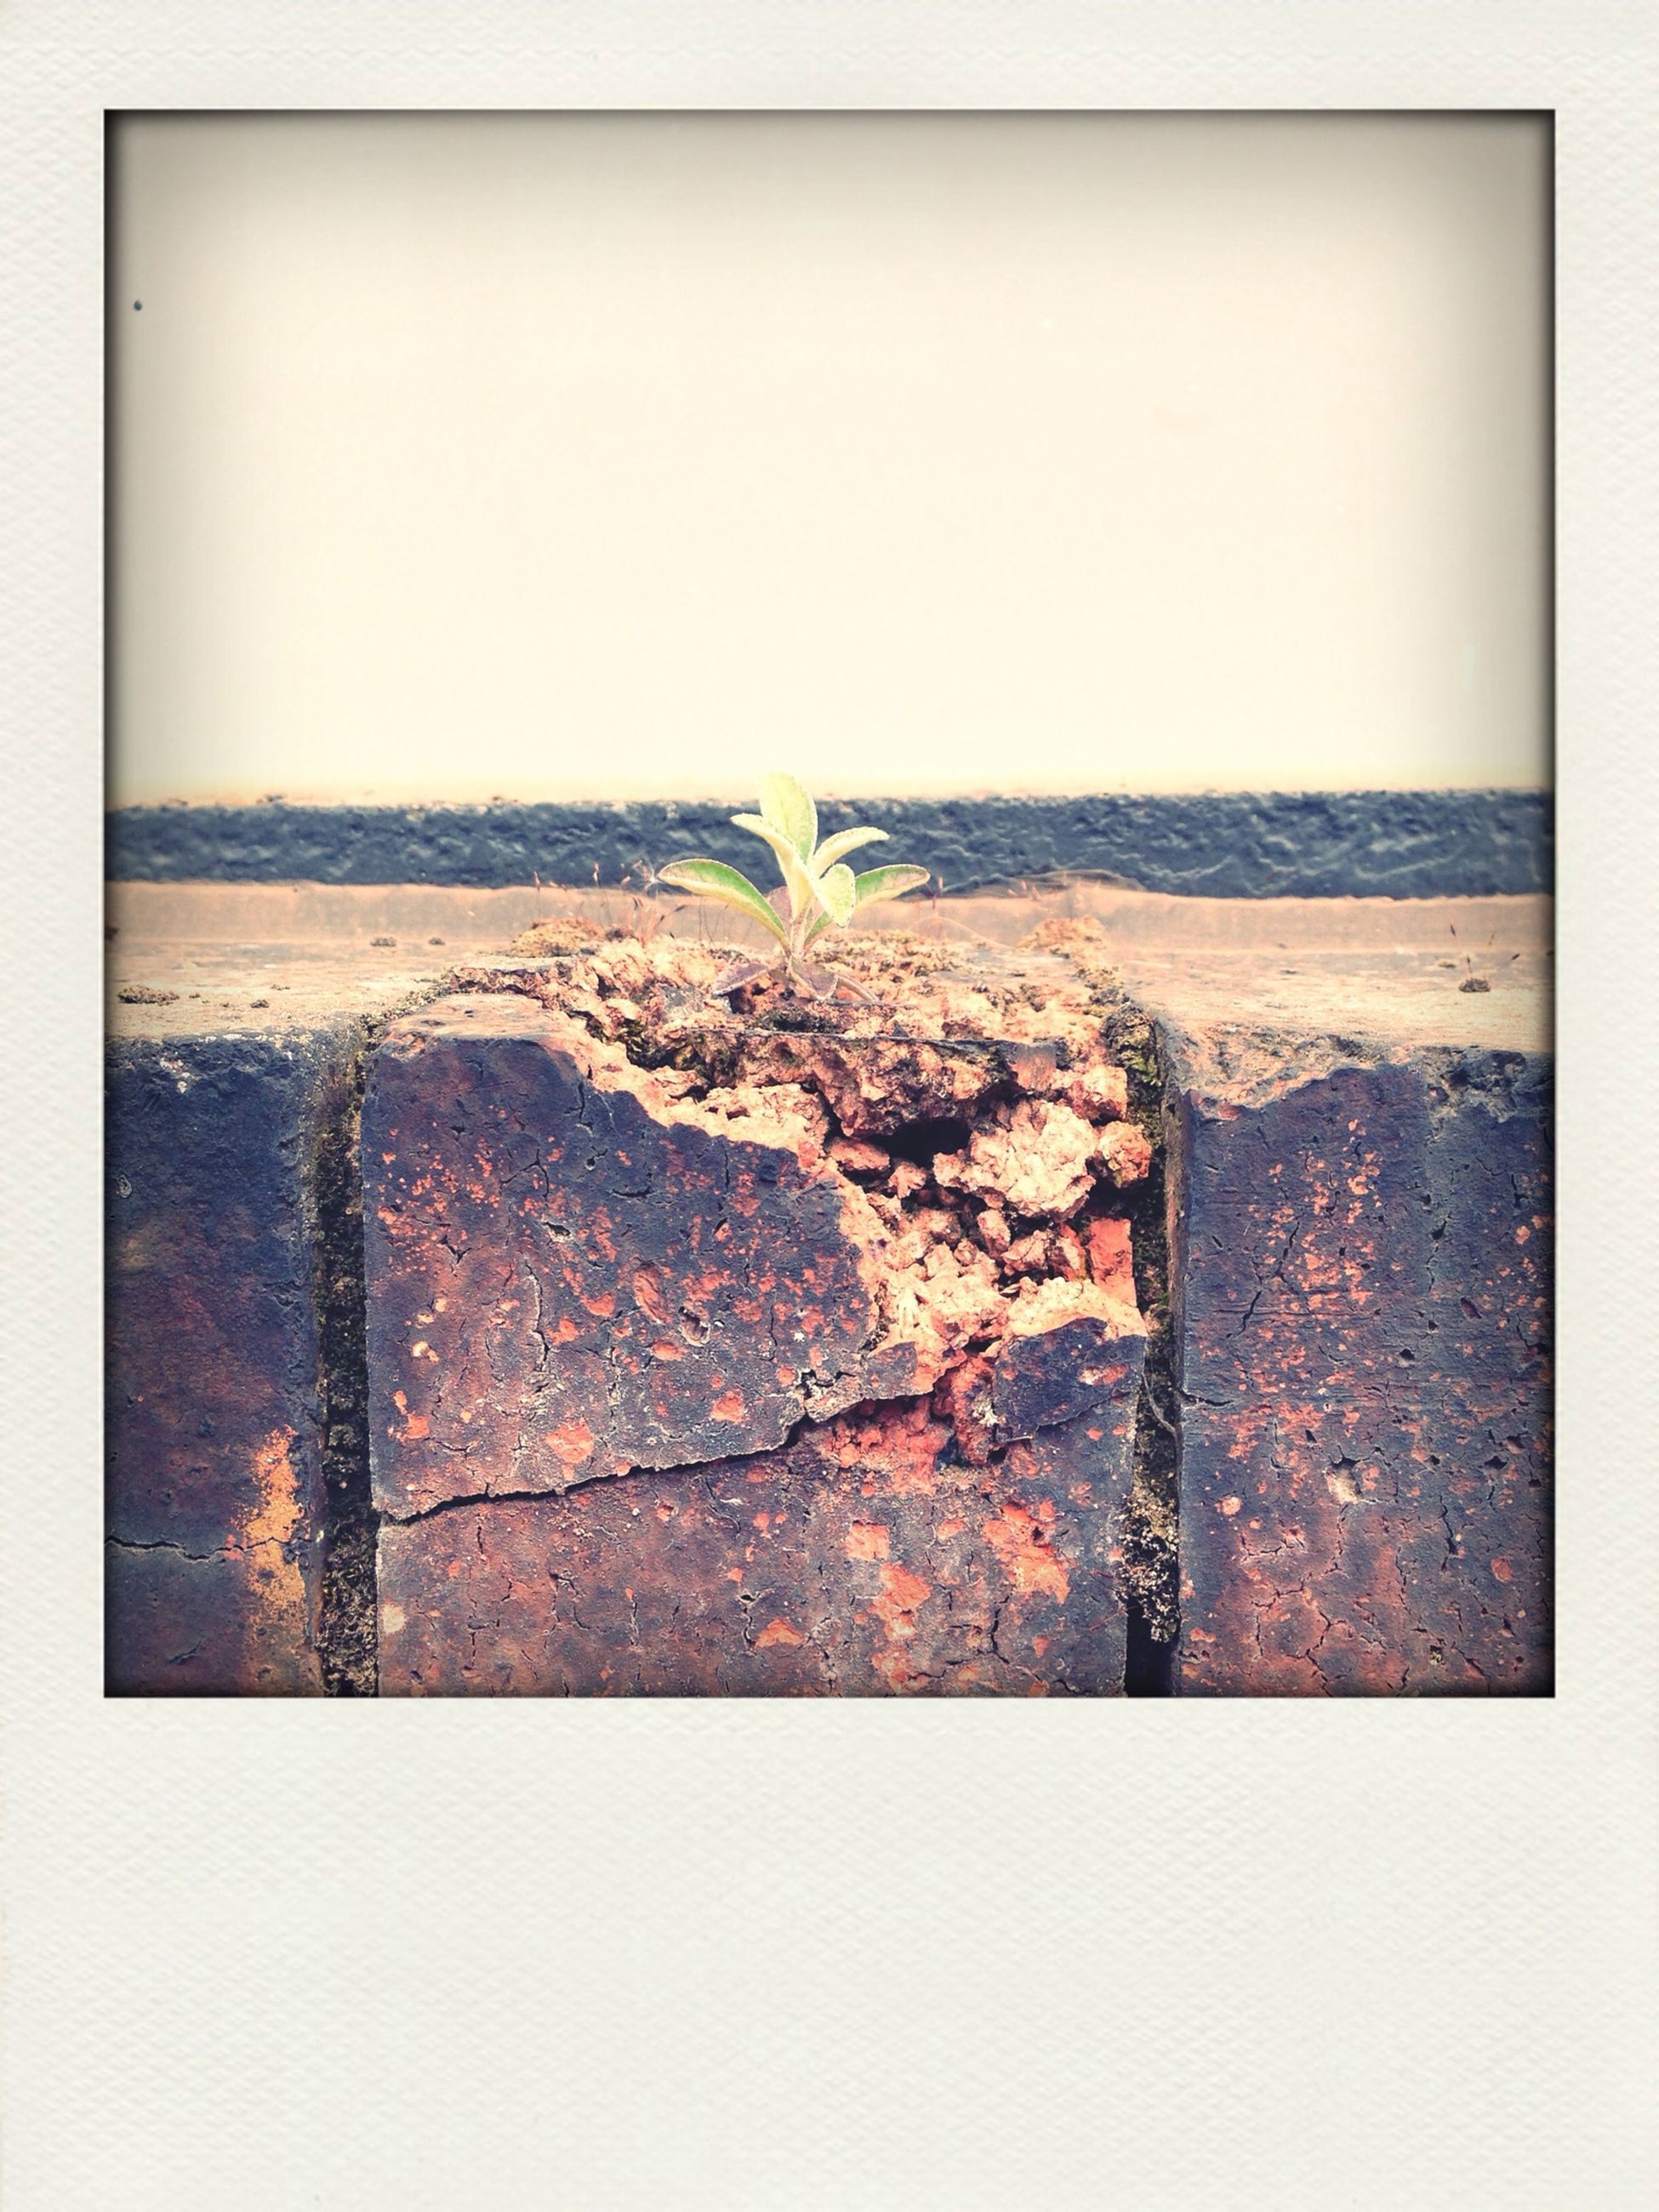 transfer print, auto post production filter, copy space, wall - building feature, built structure, architecture, clear sky, no people, textured, outdoors, wall, day, vignette, abandoned, close-up, damaged, old, building exterior, pattern, metal